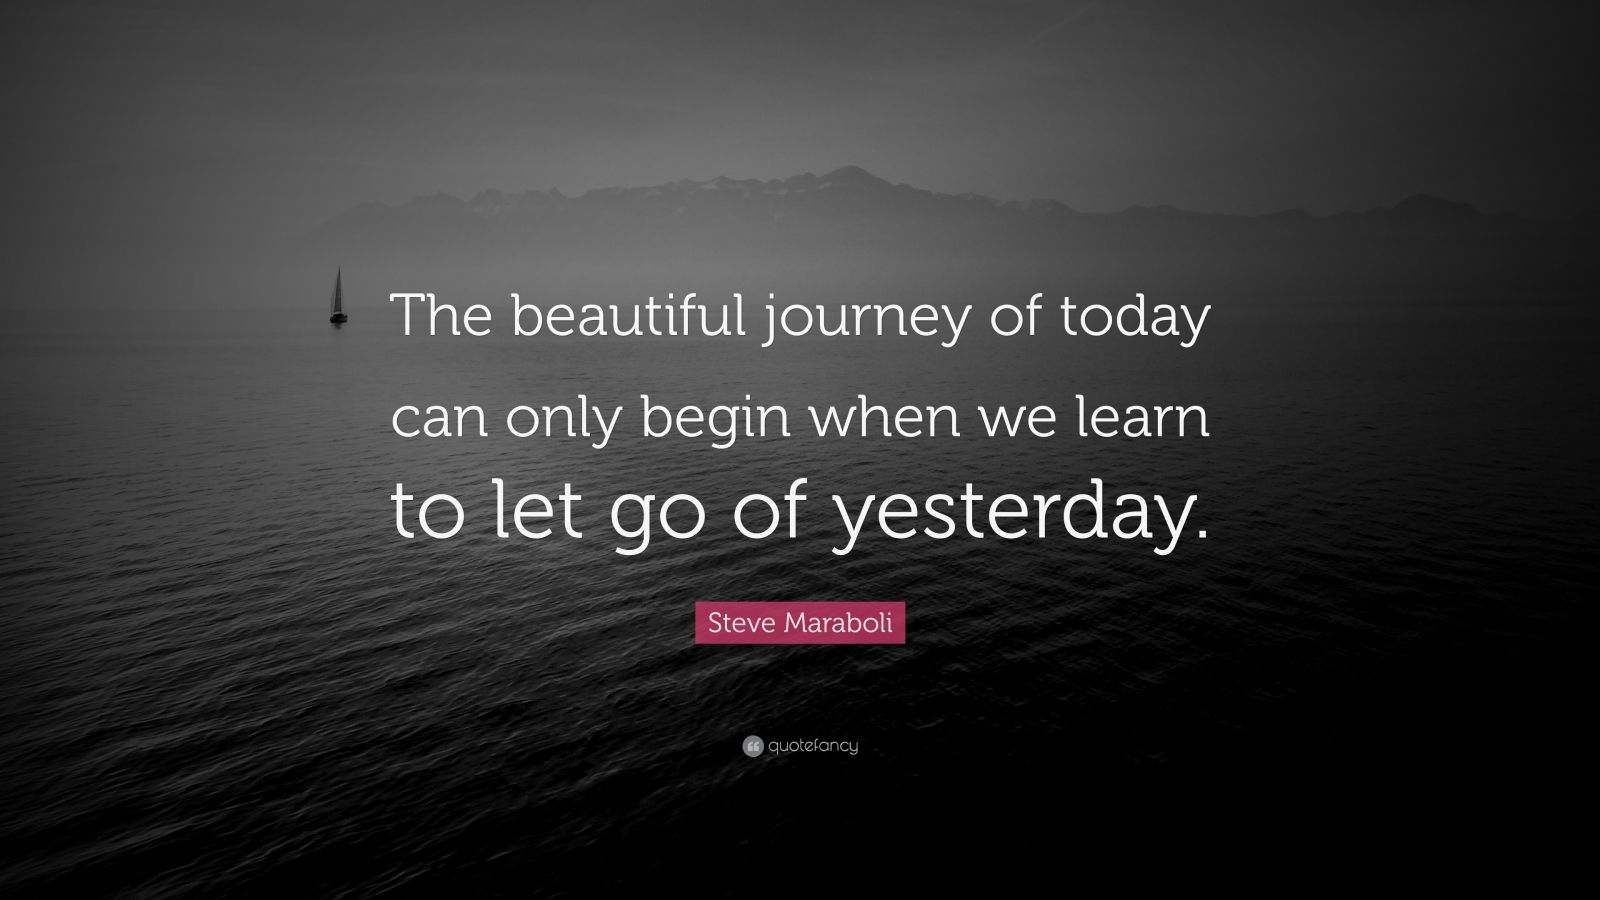 Steve Jobs Motivational Quotes Wallpaper Steve Maraboli Quote The Beautiful Journey Of Today Can